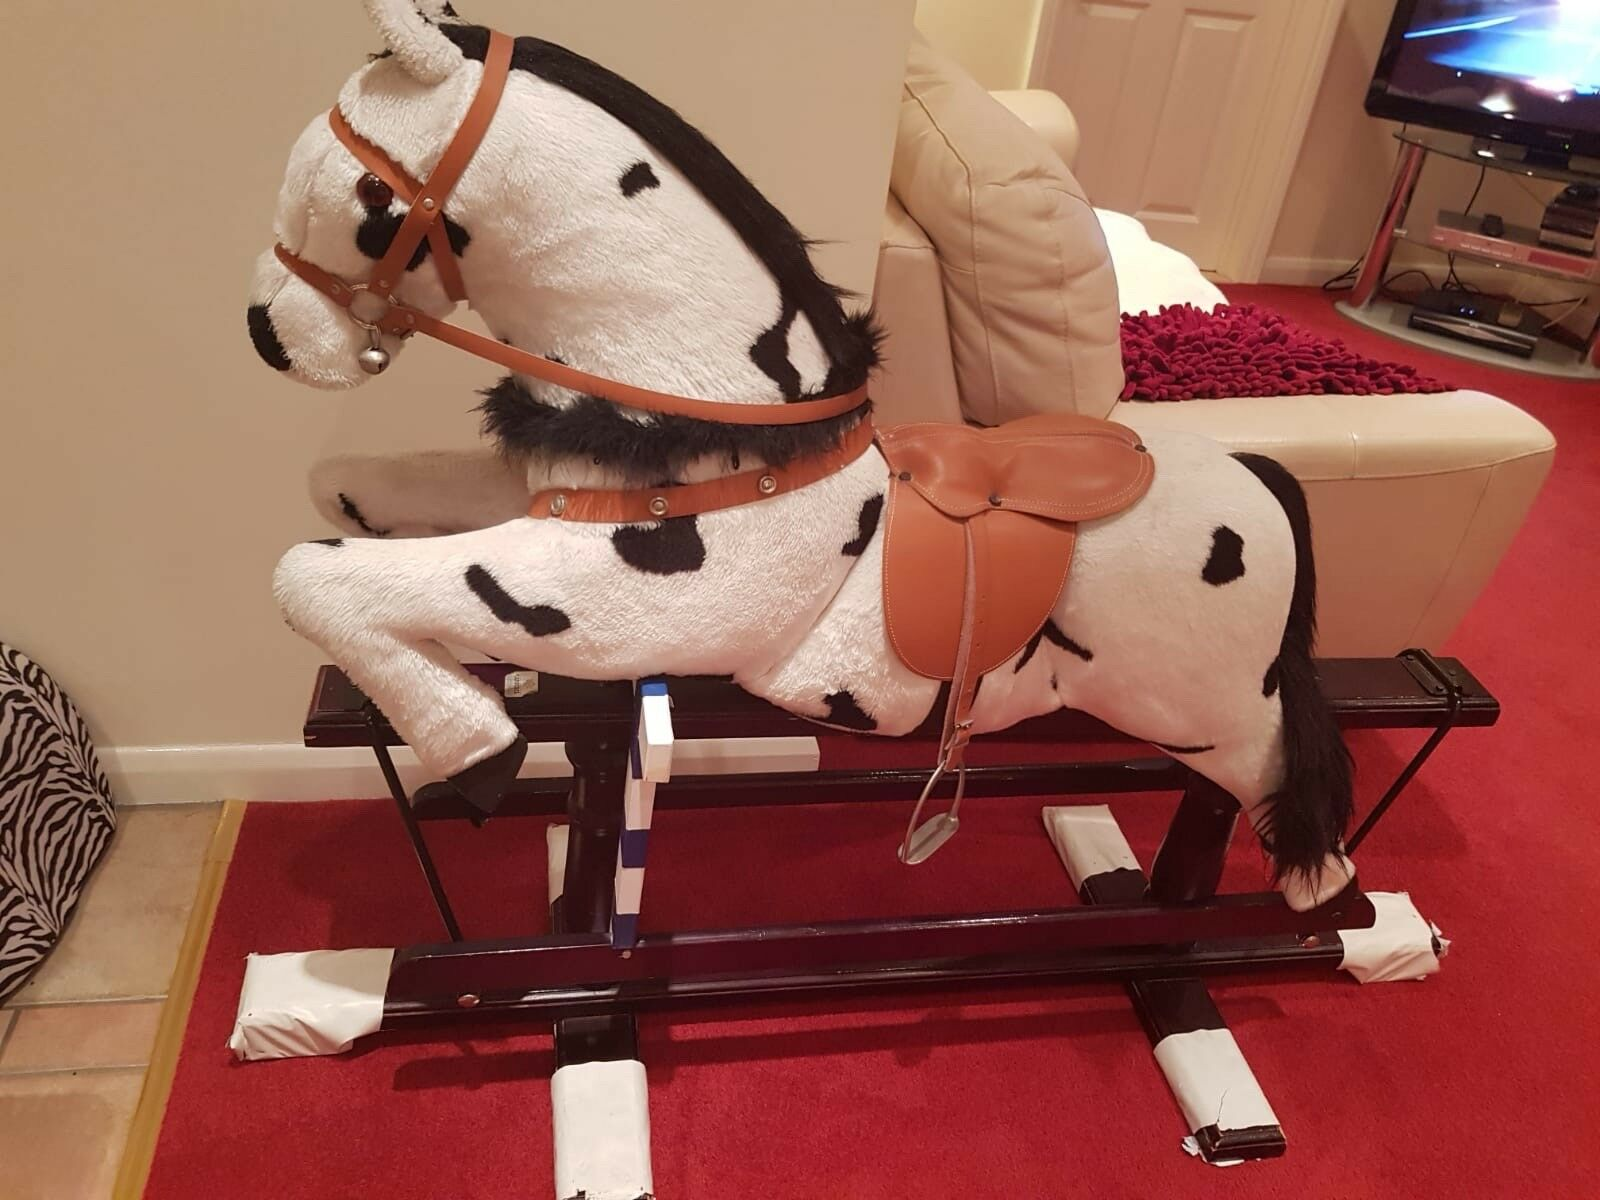 Rocking Horse by Carousel - excellent condition with all original features